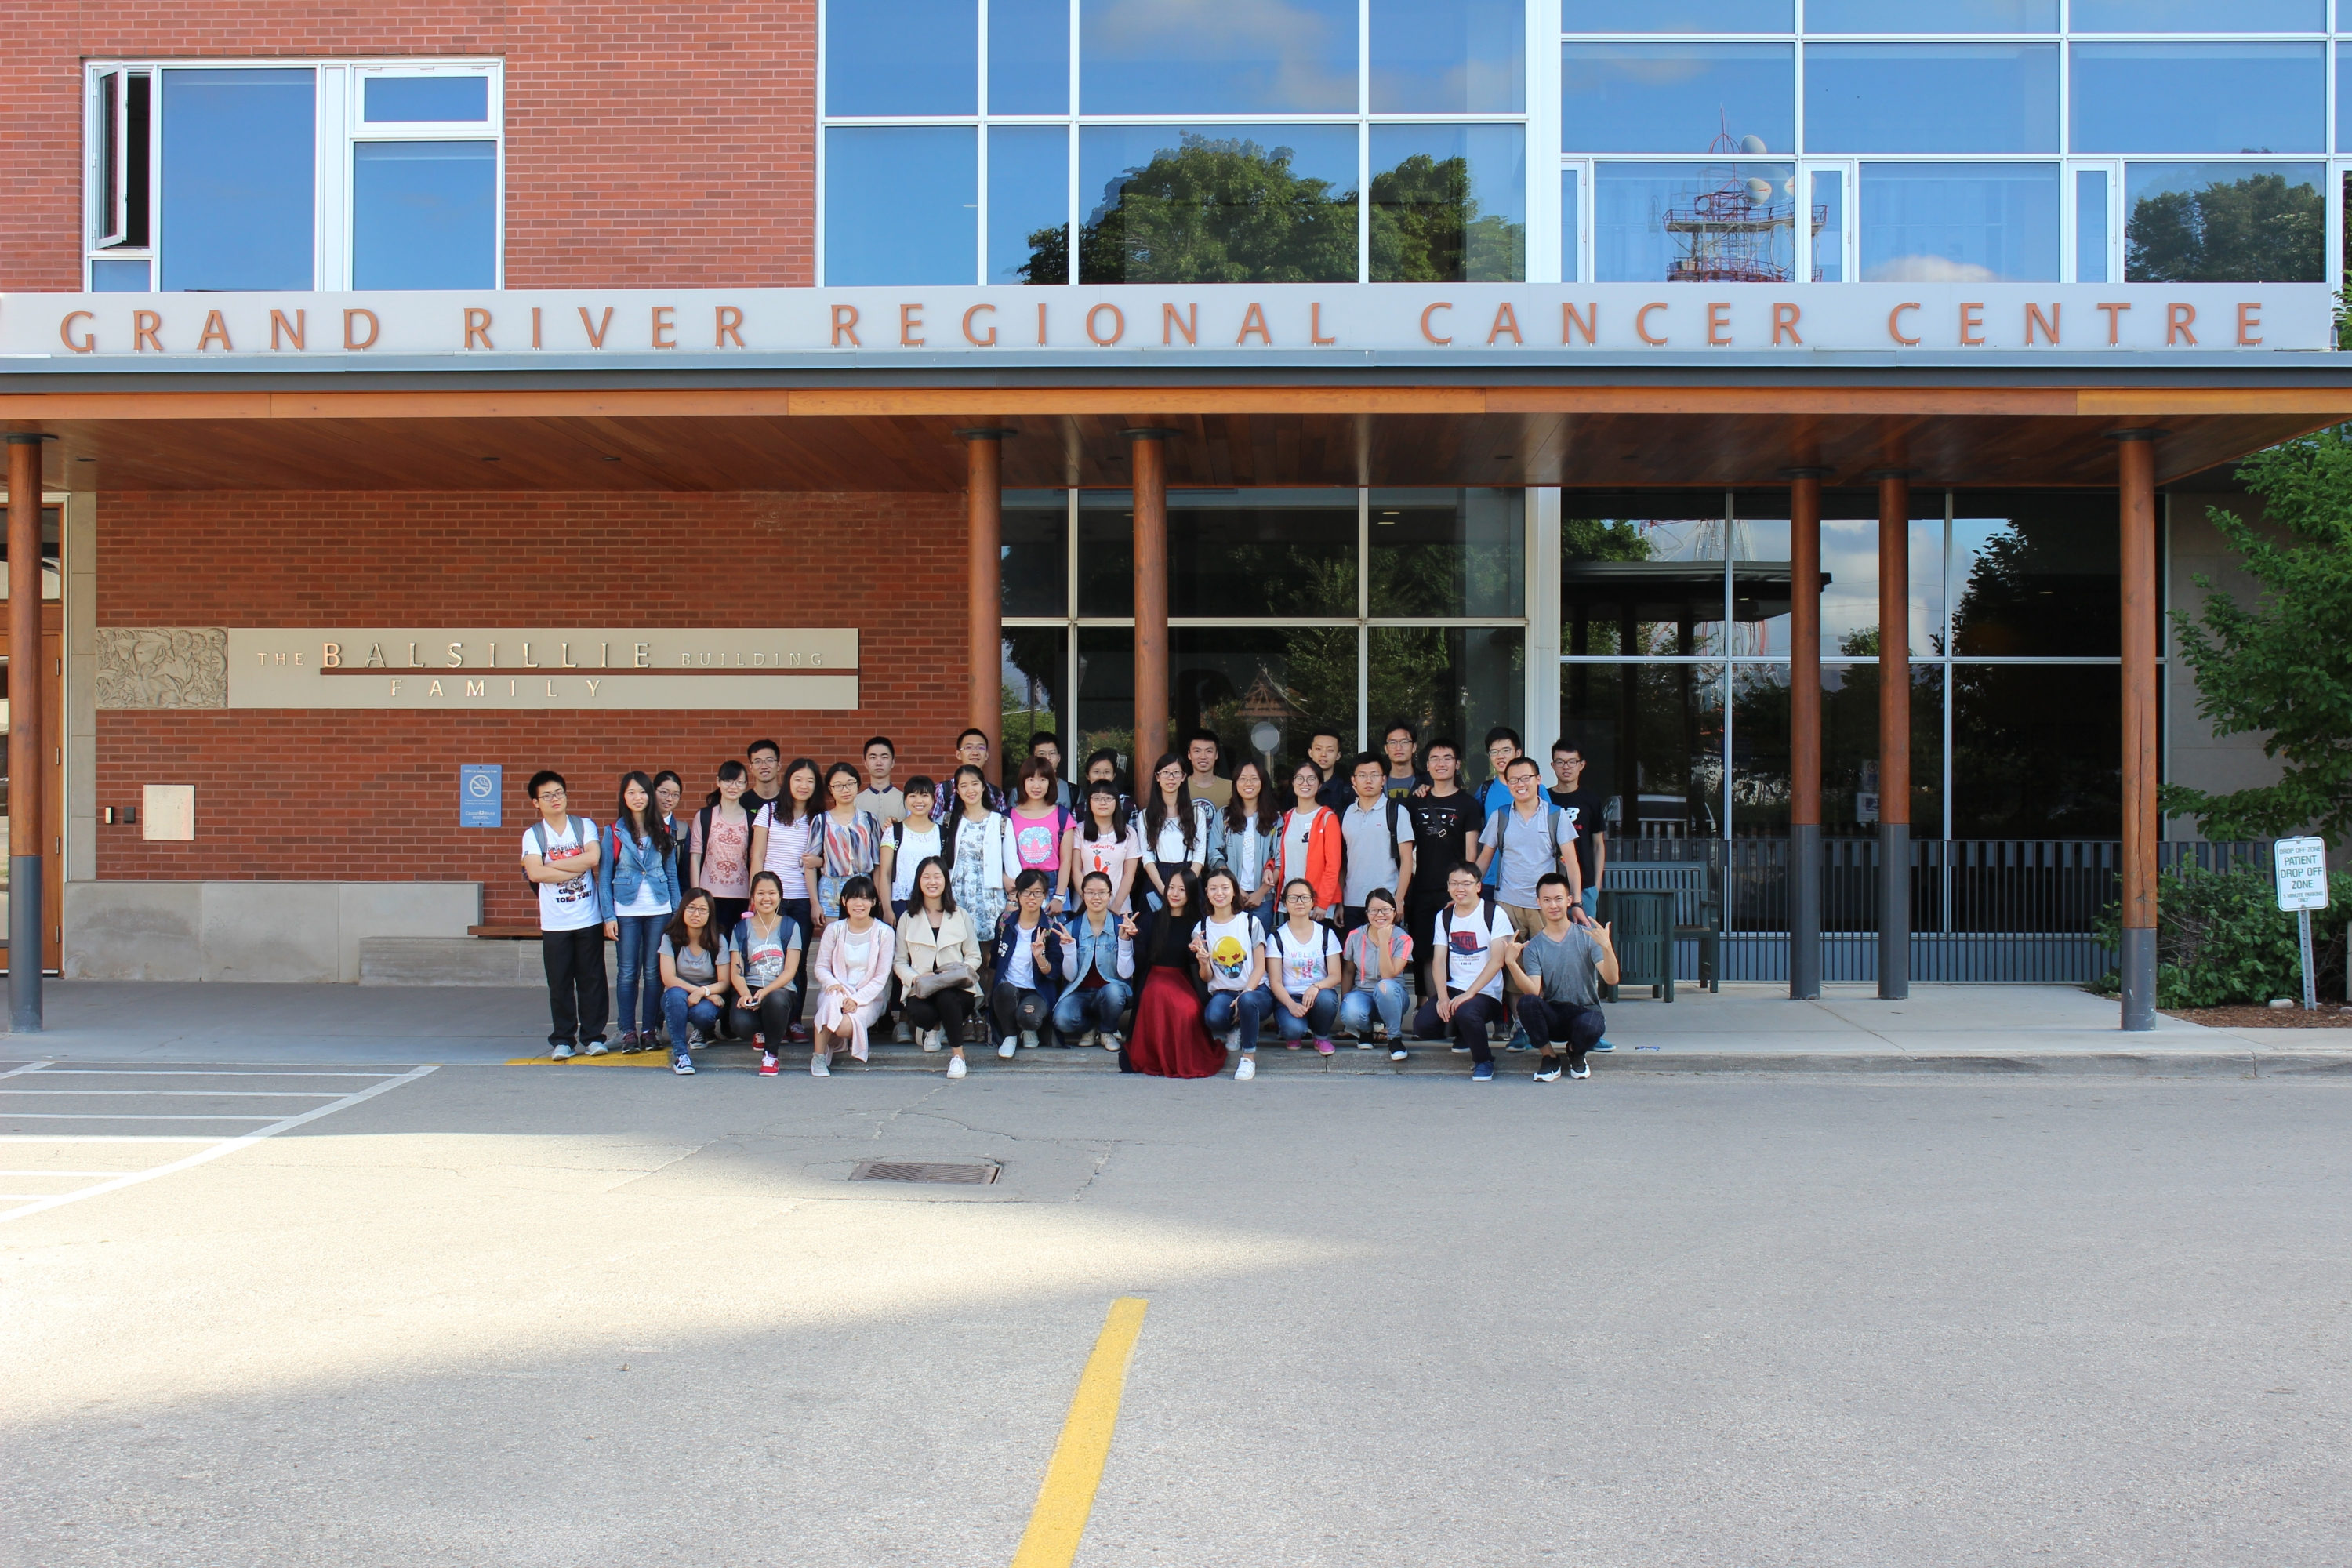 Exploring Science students pose for group photo in front of Grand River Regional Cancer Centre